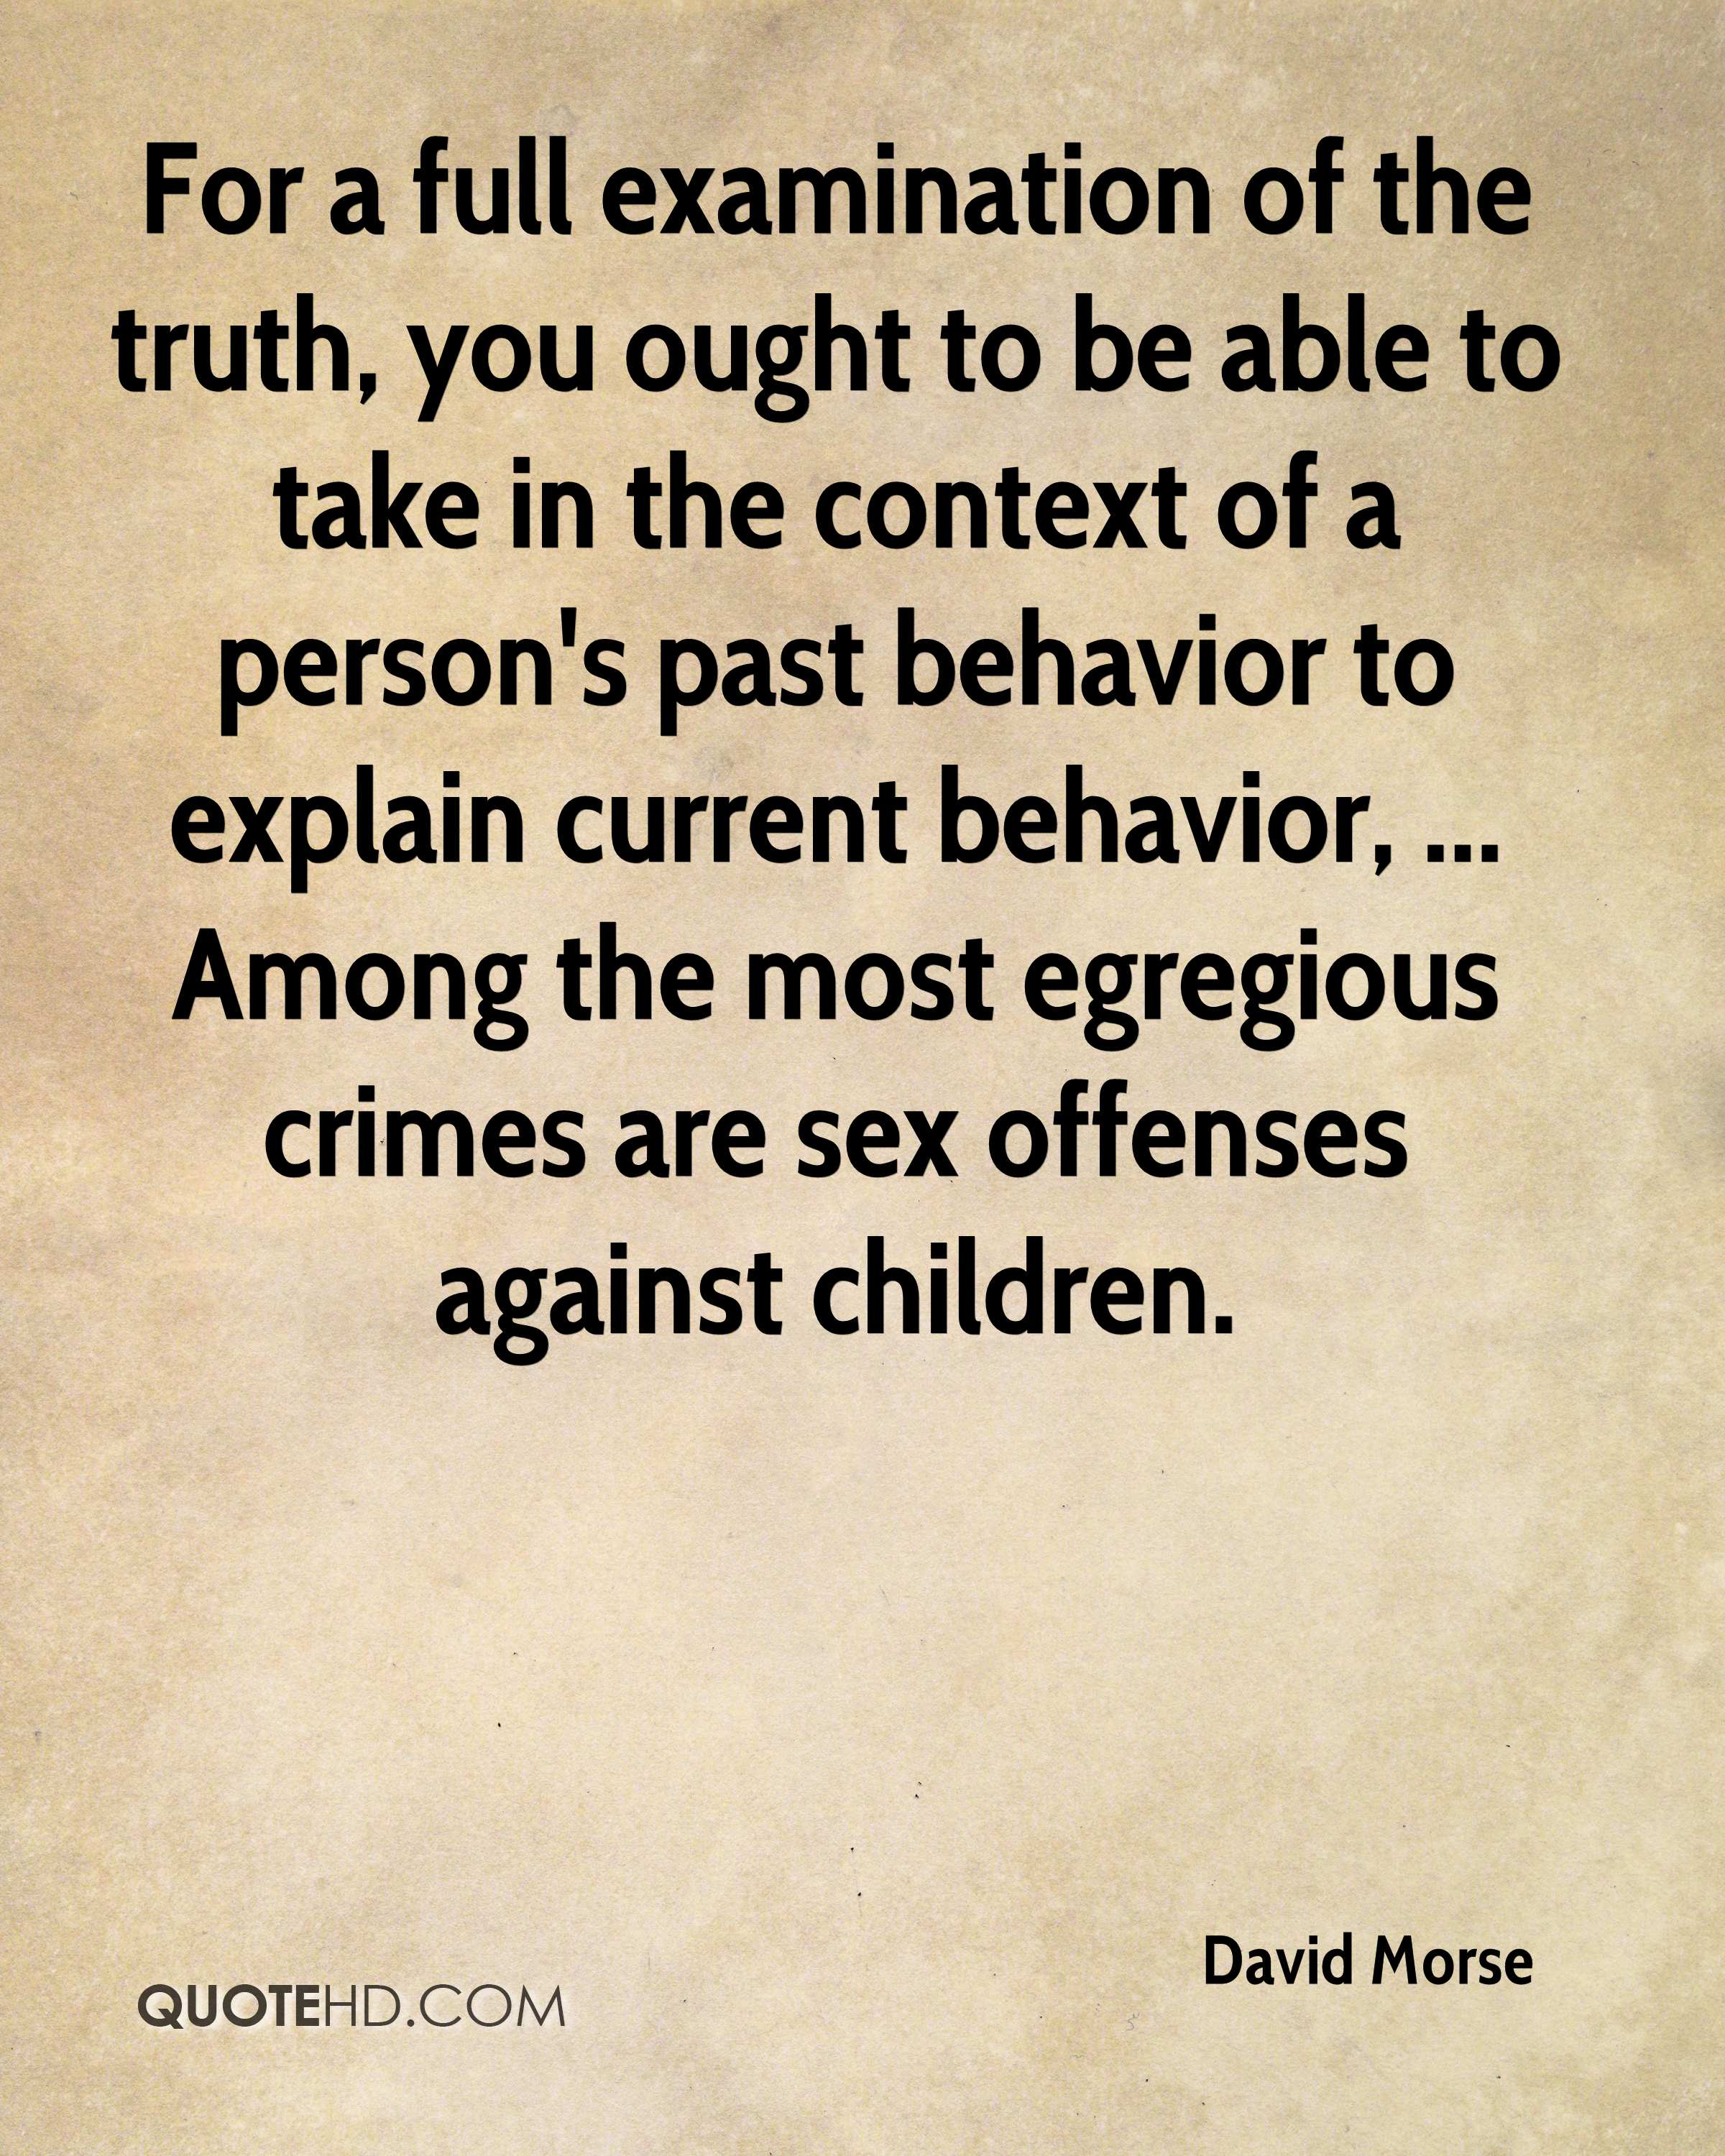 For a full examination of the truth, you ought to be able to take in the context of a person's past behavior to explain current behavior, ... Among the most egregious crimes are sex offenses against children.